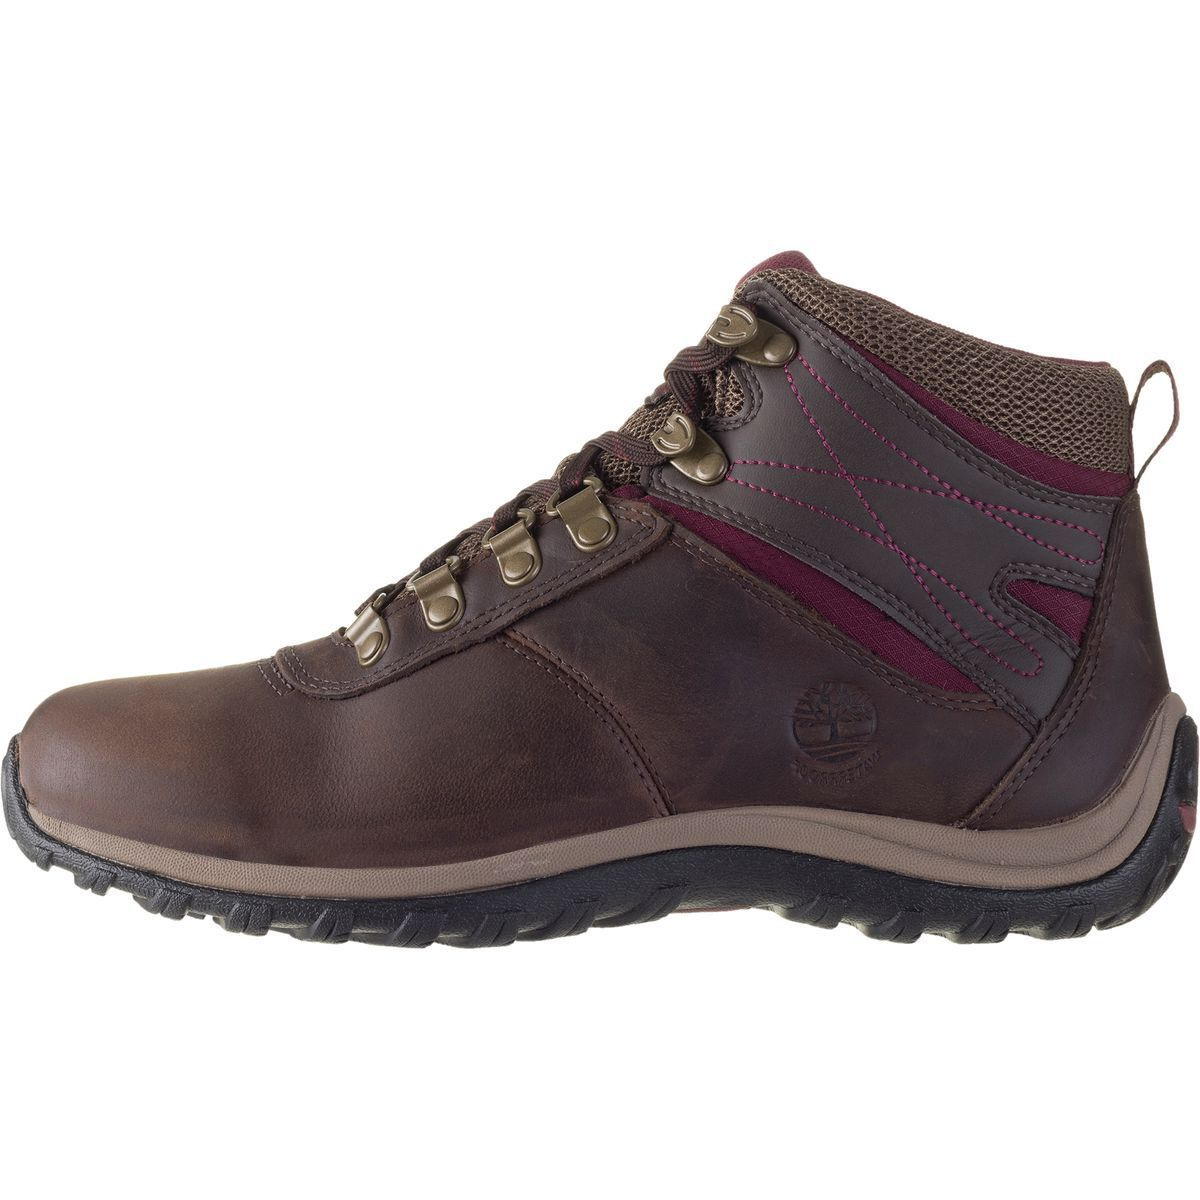 Timberland Norwood Mid Waterproof Boot - Women's